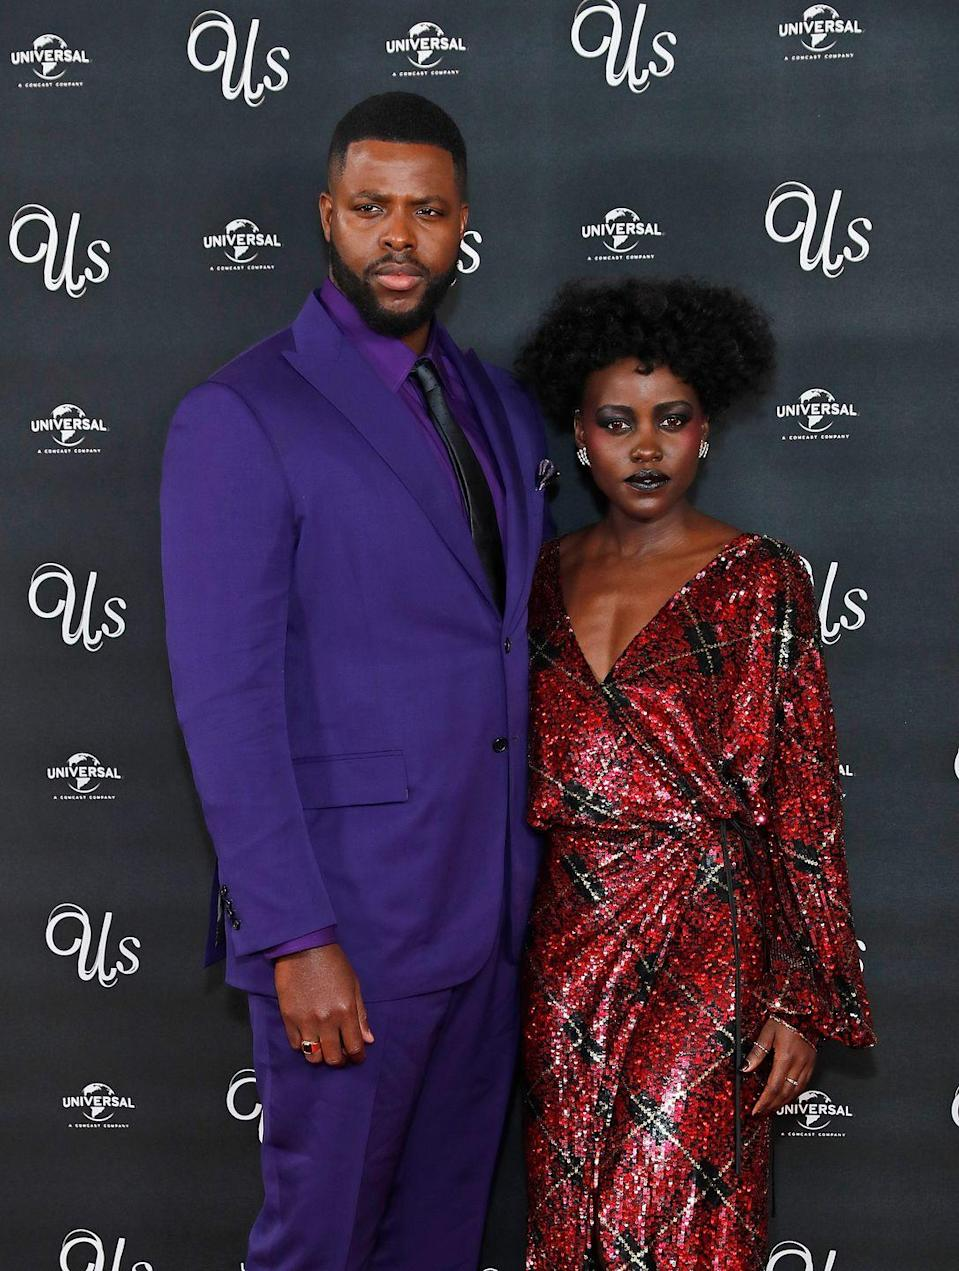 "<p>The 2017 Marvel Cinematic Universe blockbuster hit <em>Black Panther</em> might have been Lupita Nyong'o and Winston Duke's first time working together on-screen, but their connection goes way back. The <em>Us</em> co-stars and real life friends attended Yale University's School of Drama at the same time; Nyong'o even gave Duke a tour of the campus on his first day of school. The duo grew close over time, oblivious when they watched the first <em>Avengers</em> film together that they would be joining the MCU years later. </p><p>""[Lupita] and I became really close because we shared that immigrant experience,"" Duke told <em><a href=""https://www.esquire.com/entertainment/movies/a18199538/winston-duke-black-panther-m-baku-interview/"" rel=""nofollow noopener"" target=""_blank"" data-ylk=""slk:Esquire"" class=""link rapid-noclick-resp"">Esquire</a></em>. He hails from Trinidad, and the Academy Award winner, whose family is Kenyan, was born in Mexico. ""We shared the idea of having really big dreams knowing that we'd left our own country.""</p>"